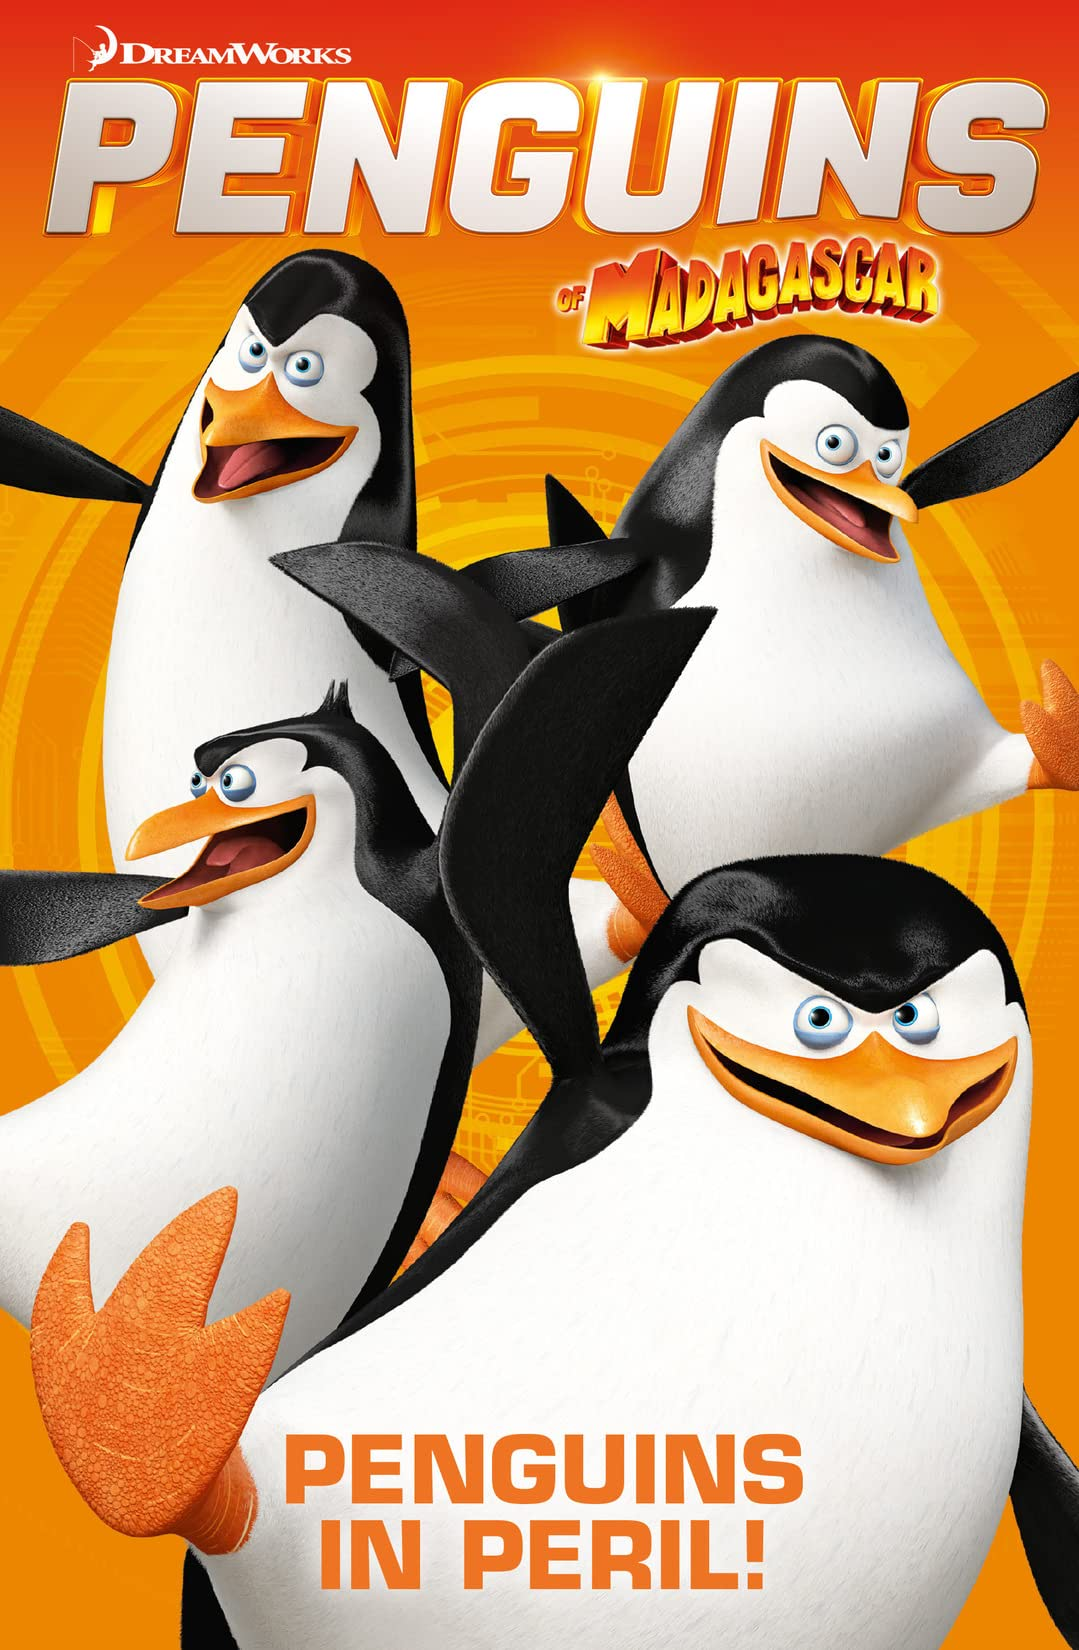 Penguins of Madagascar Vol. 3: Penguins in Peril